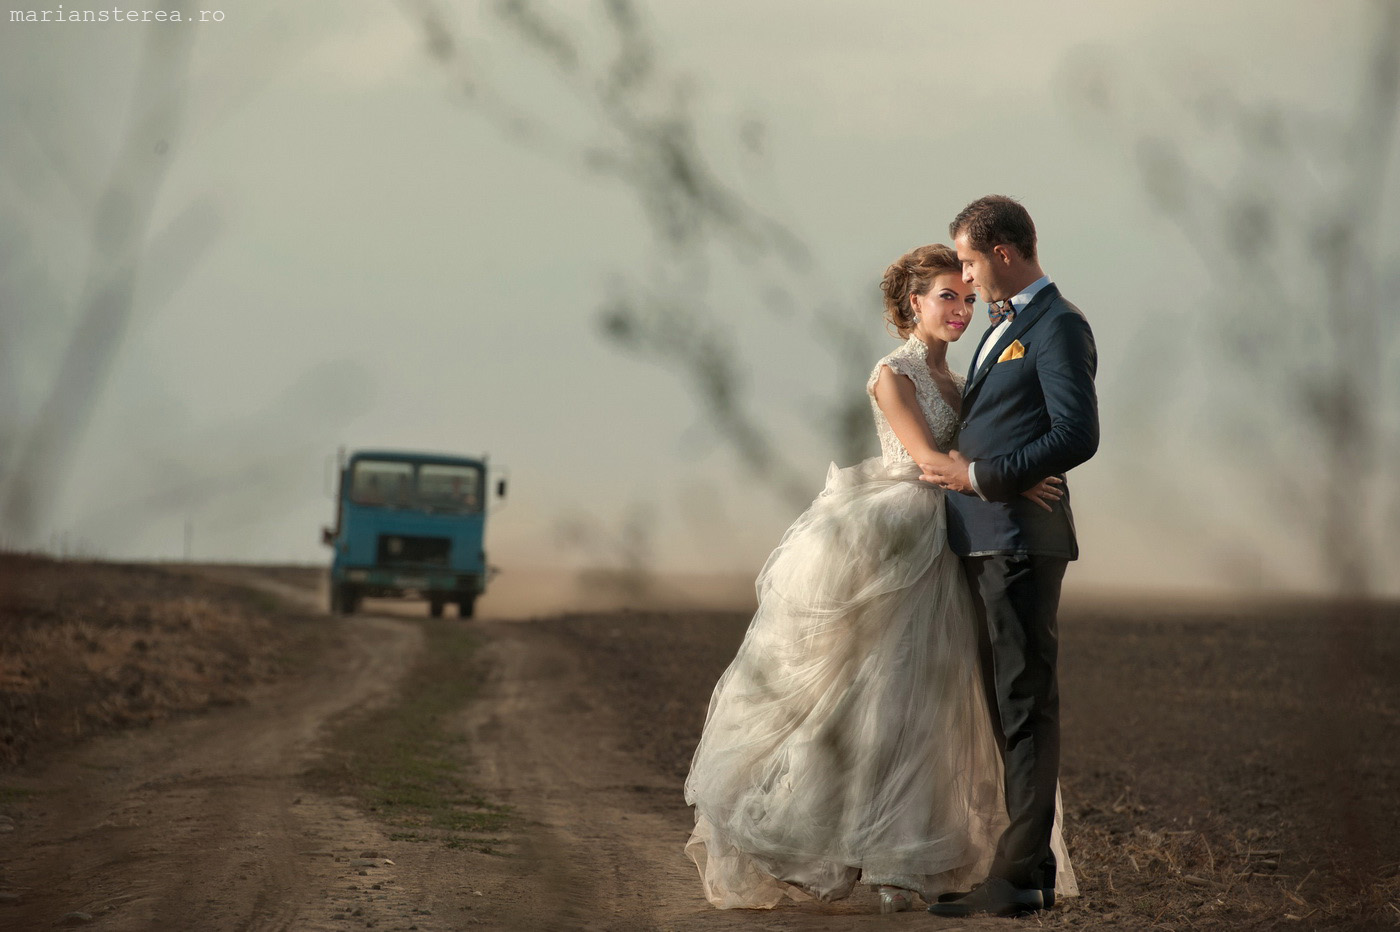 Destination+Wedding+Photographer_Marian_Sterea